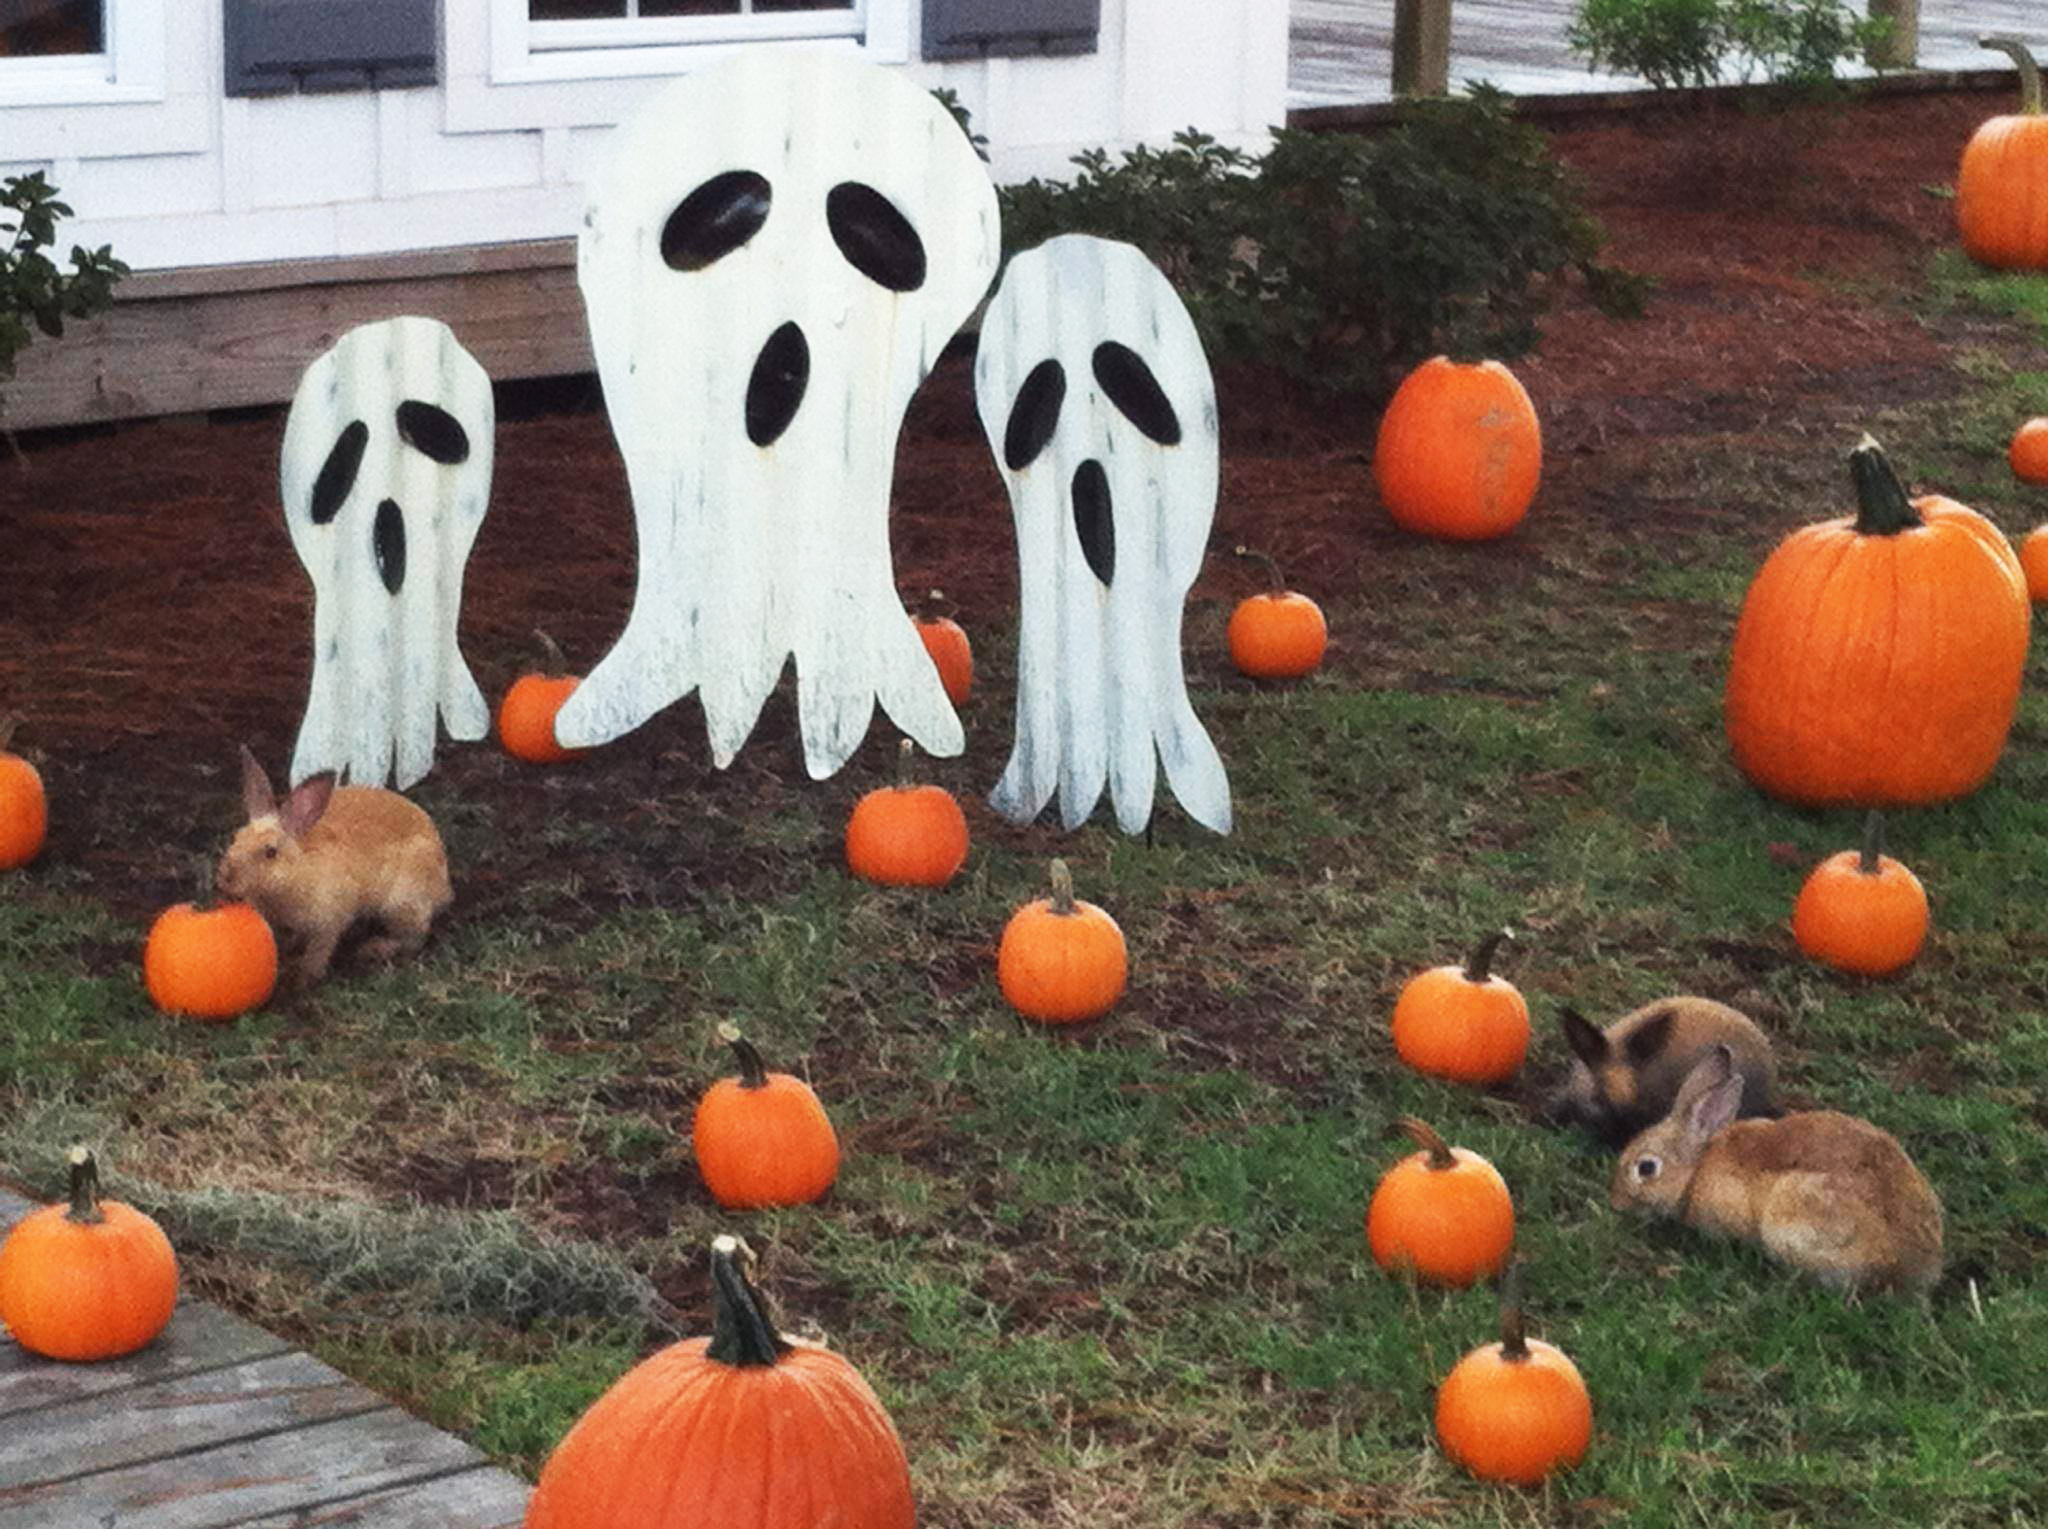 Ghosts, pumpkins, and bunnies